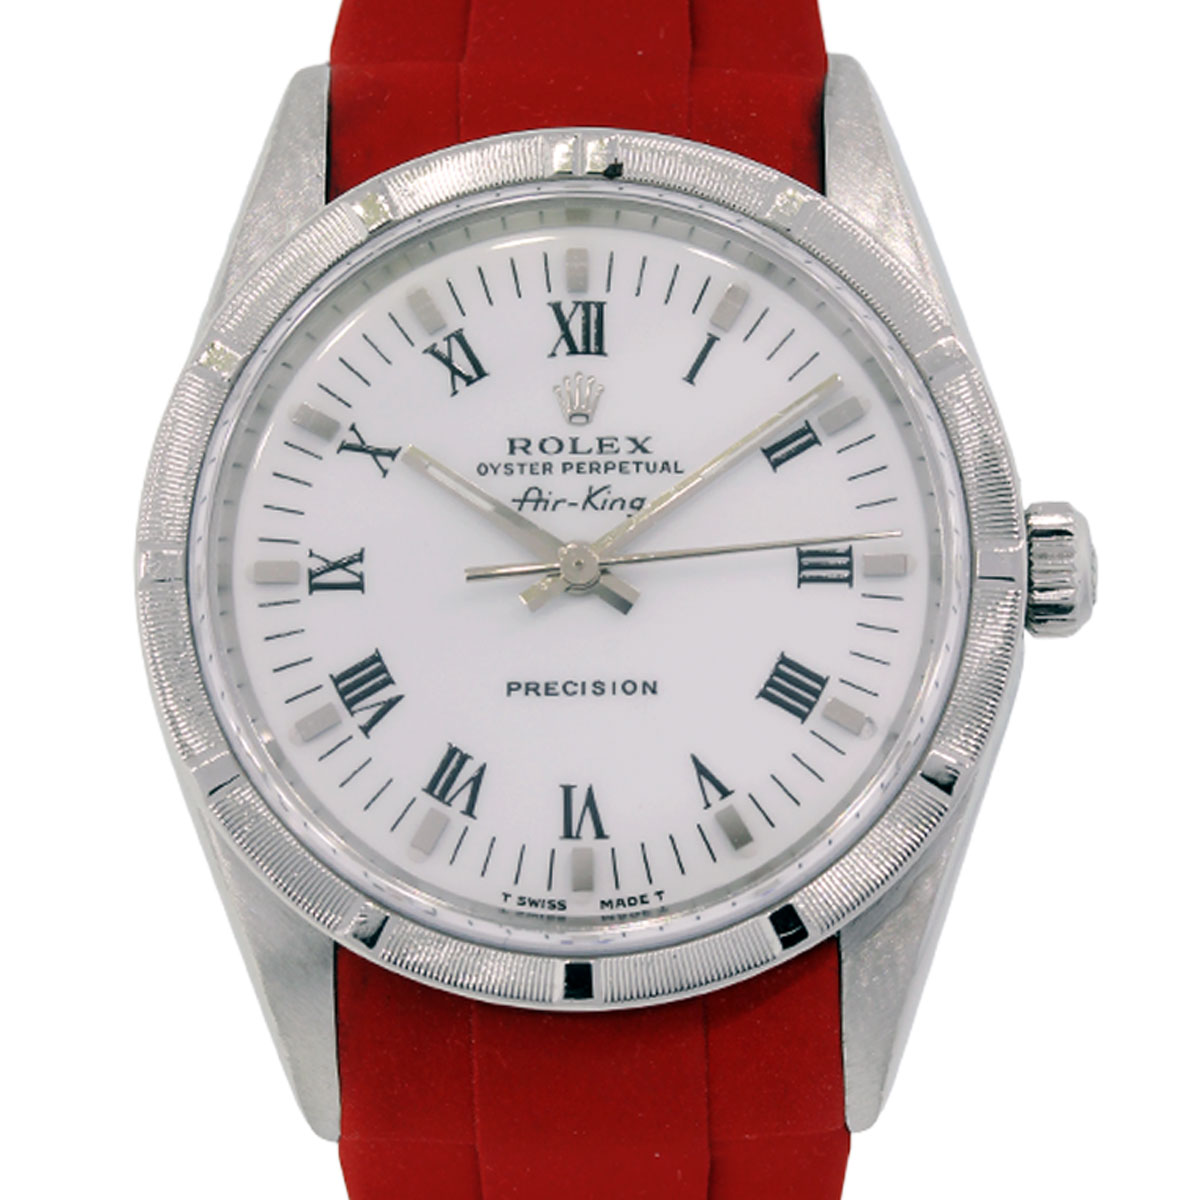 Rolex Rubber Rolex 14010 Air King Steel On Red Rubber Strap Watch